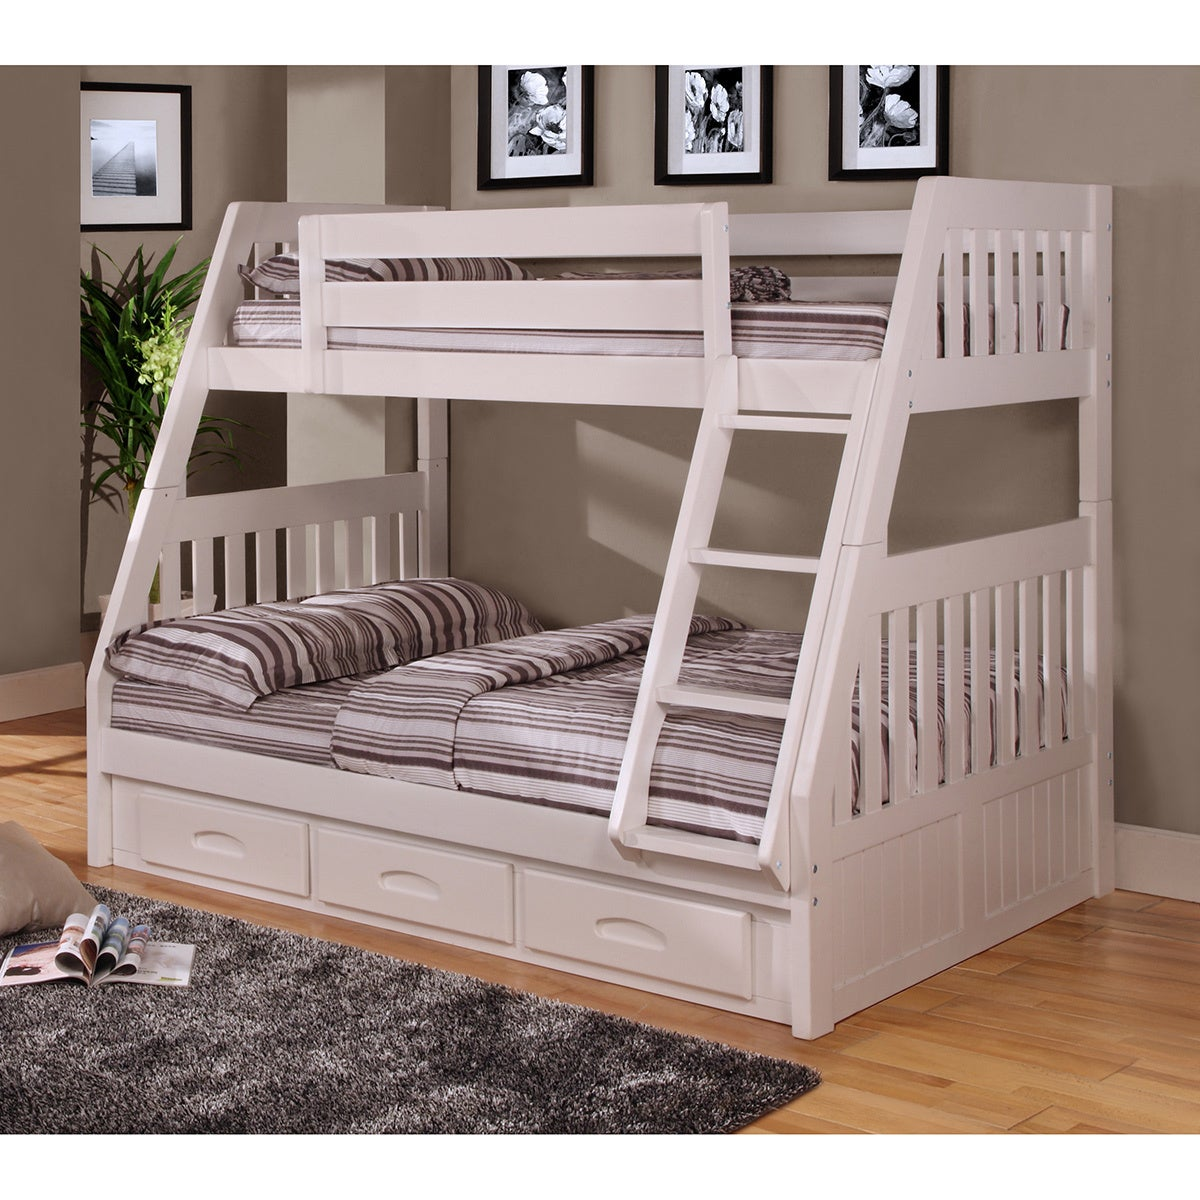 Shop Black Friday Deals On Twin Over Full Bunk Bed With 3 Drawers Underneath And Bonus Desk Hutch And Chair Overstock 12117970